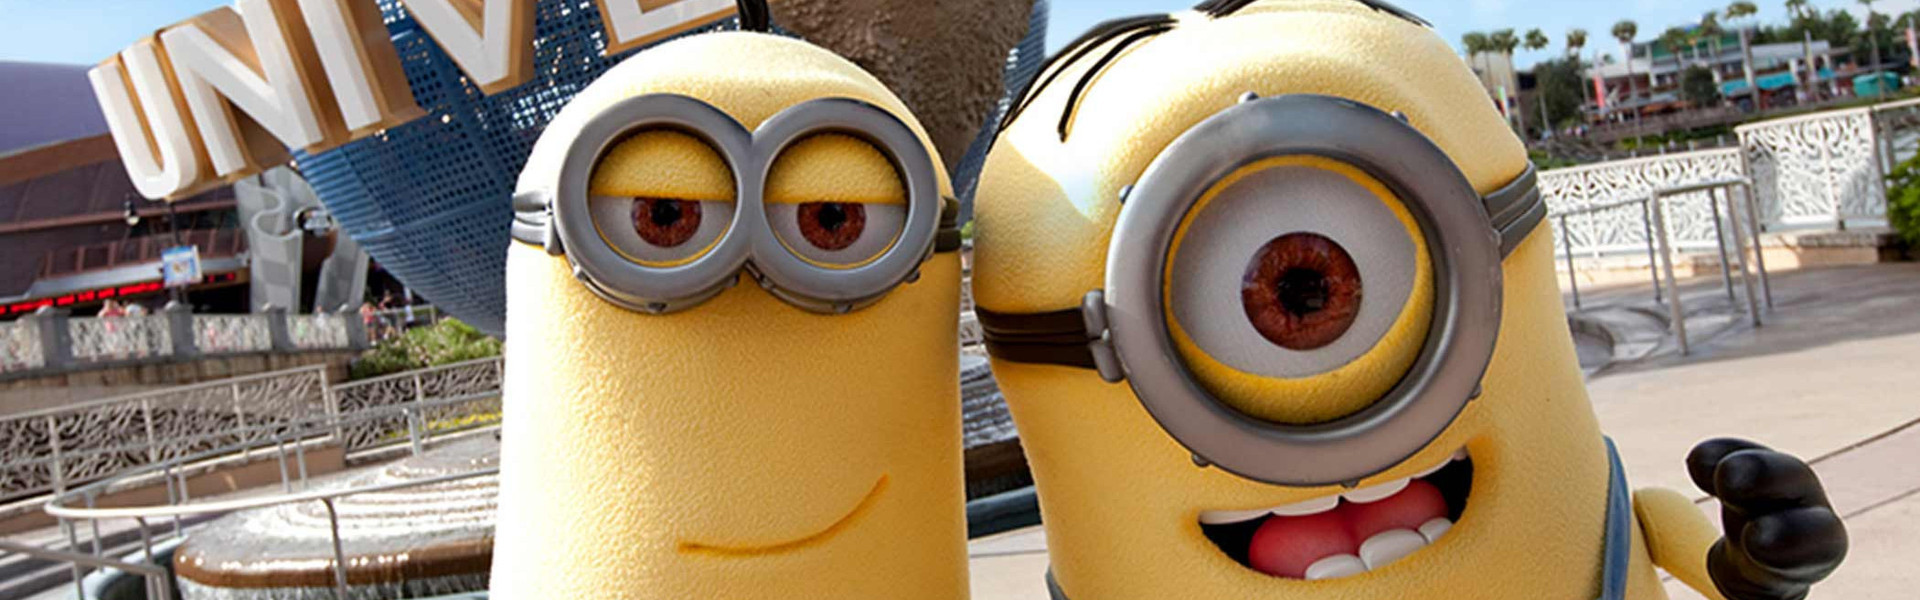 Visiting Minions in front of Universal from our resorts near Universal Studios Orlando | Discounted Universal Studios Tickets | Specials on Theme Park Tickets